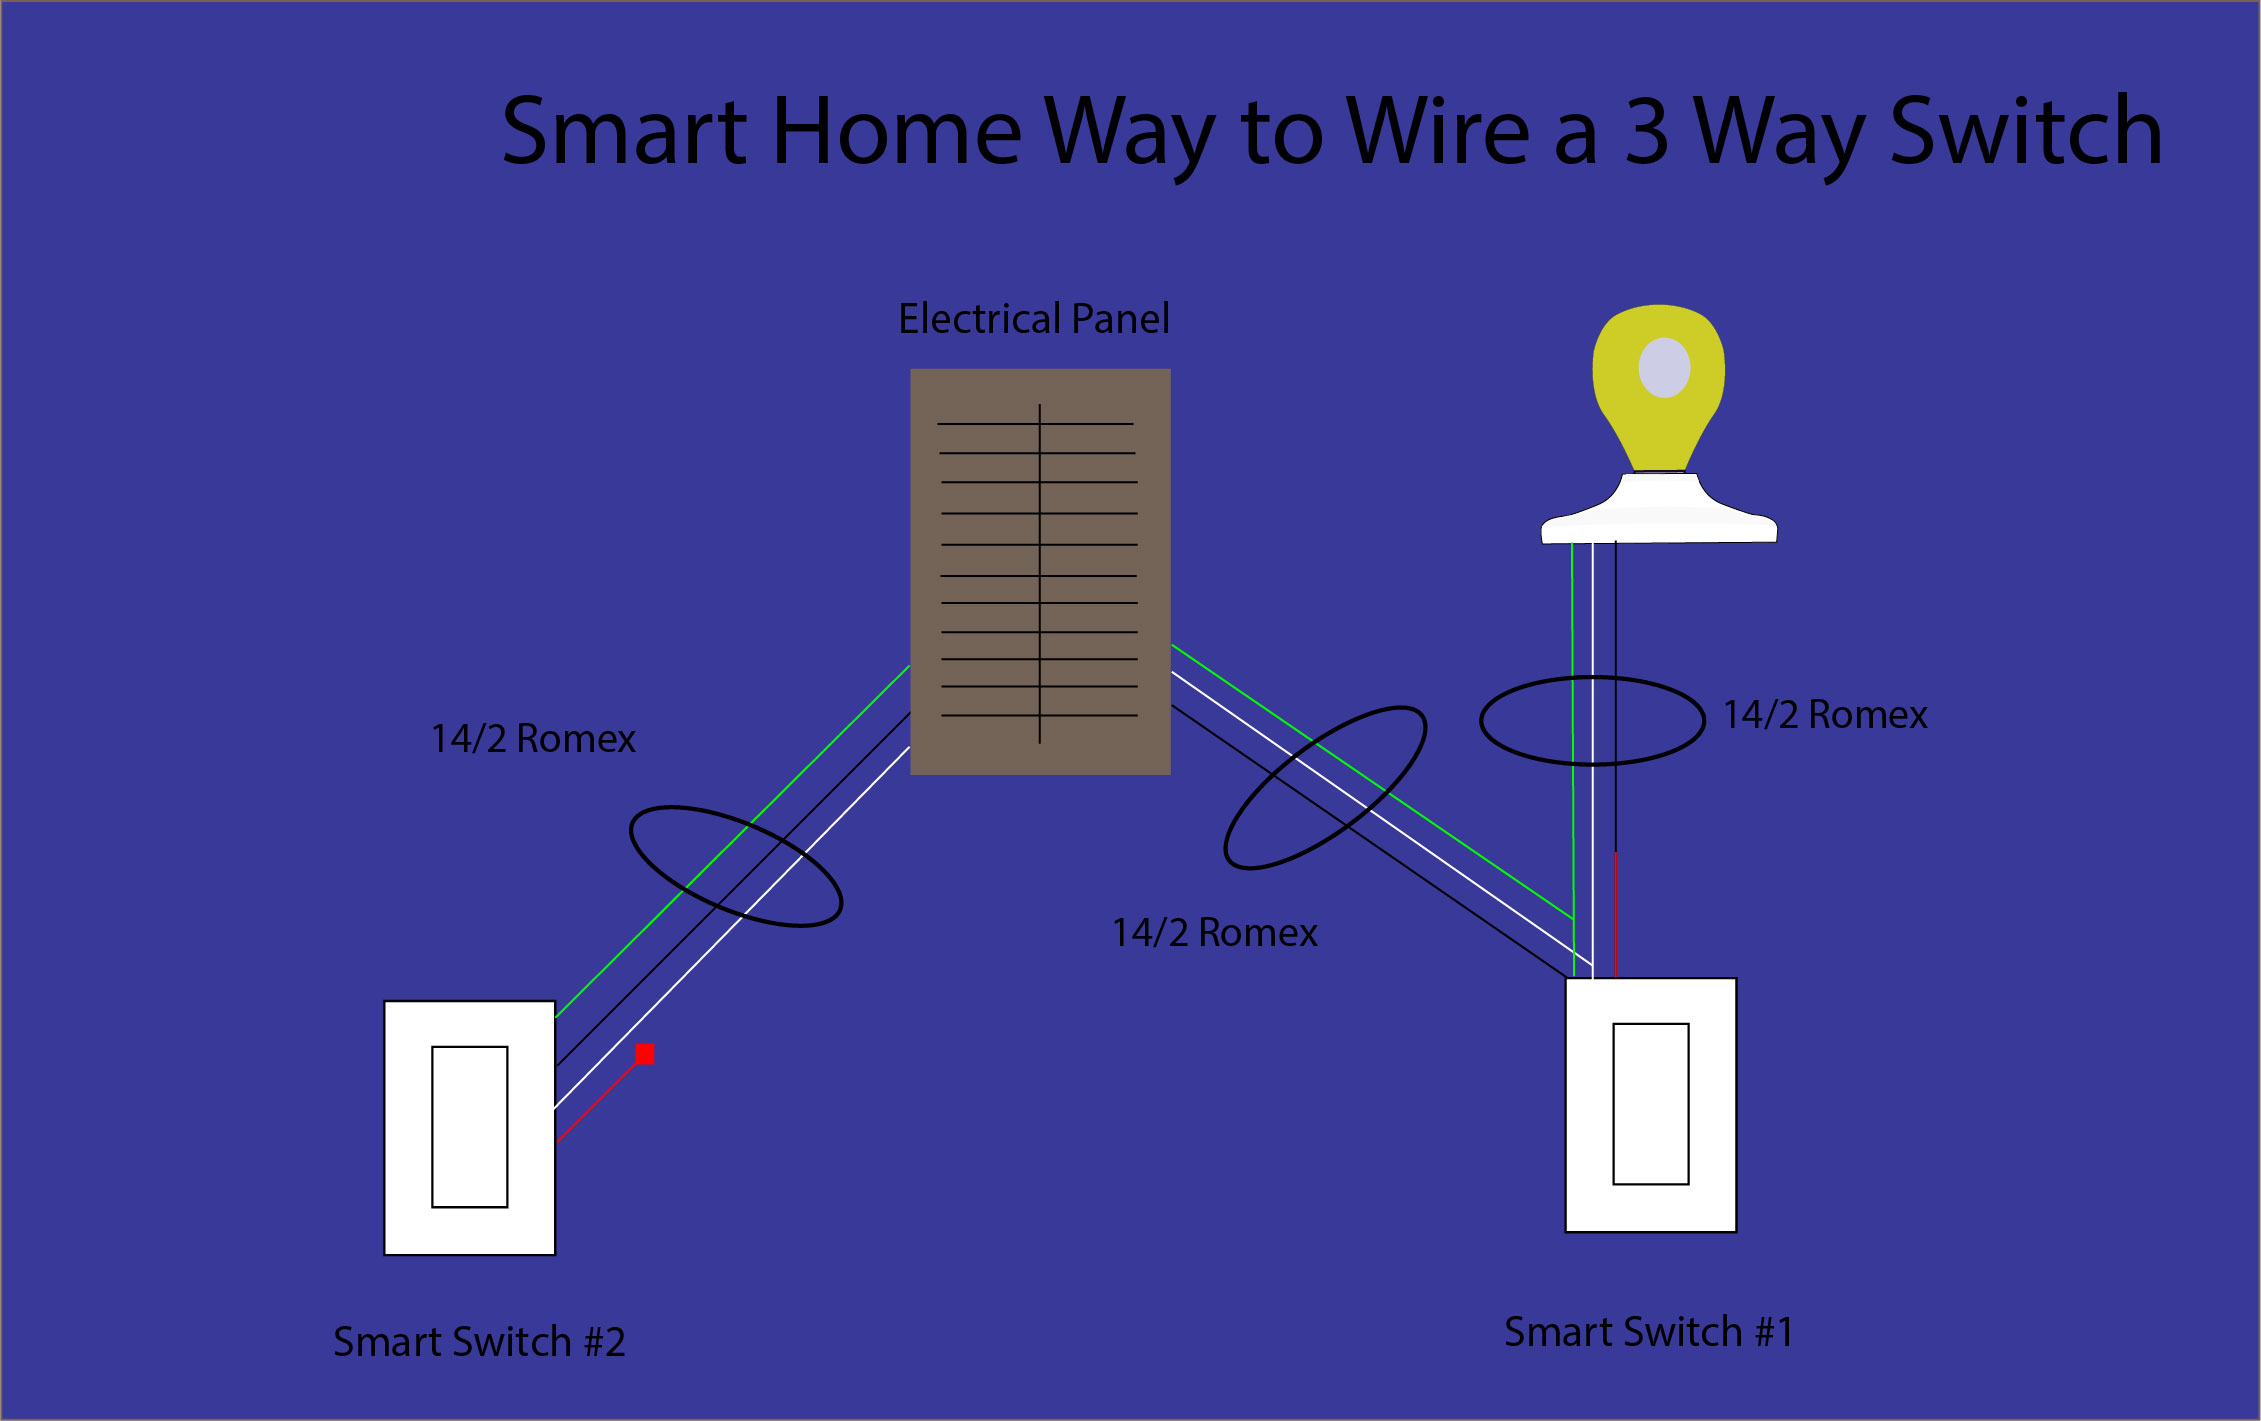 Schematic Wiring Diagram 3 Way Switch from www.smarthomemastery.com